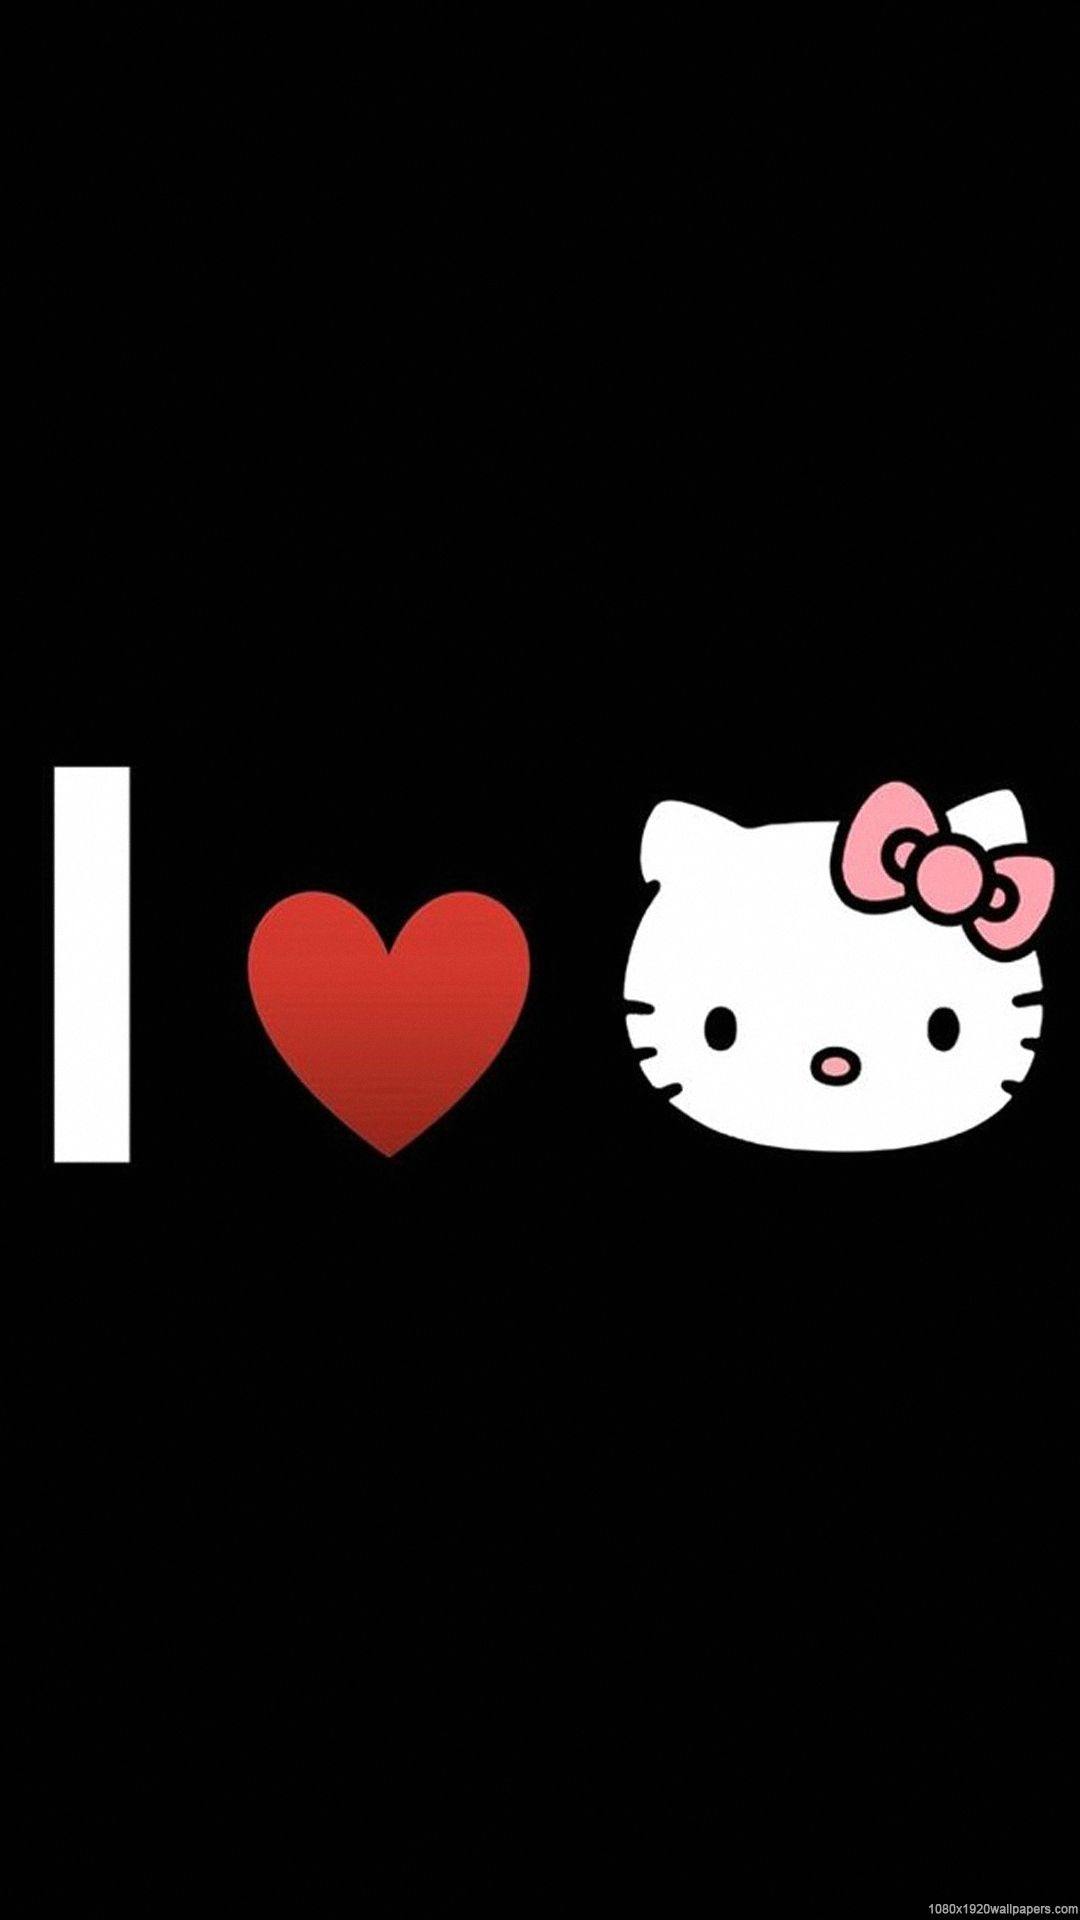 Black Hello Kitty Iphone Wallpapers Top Free Black Hello